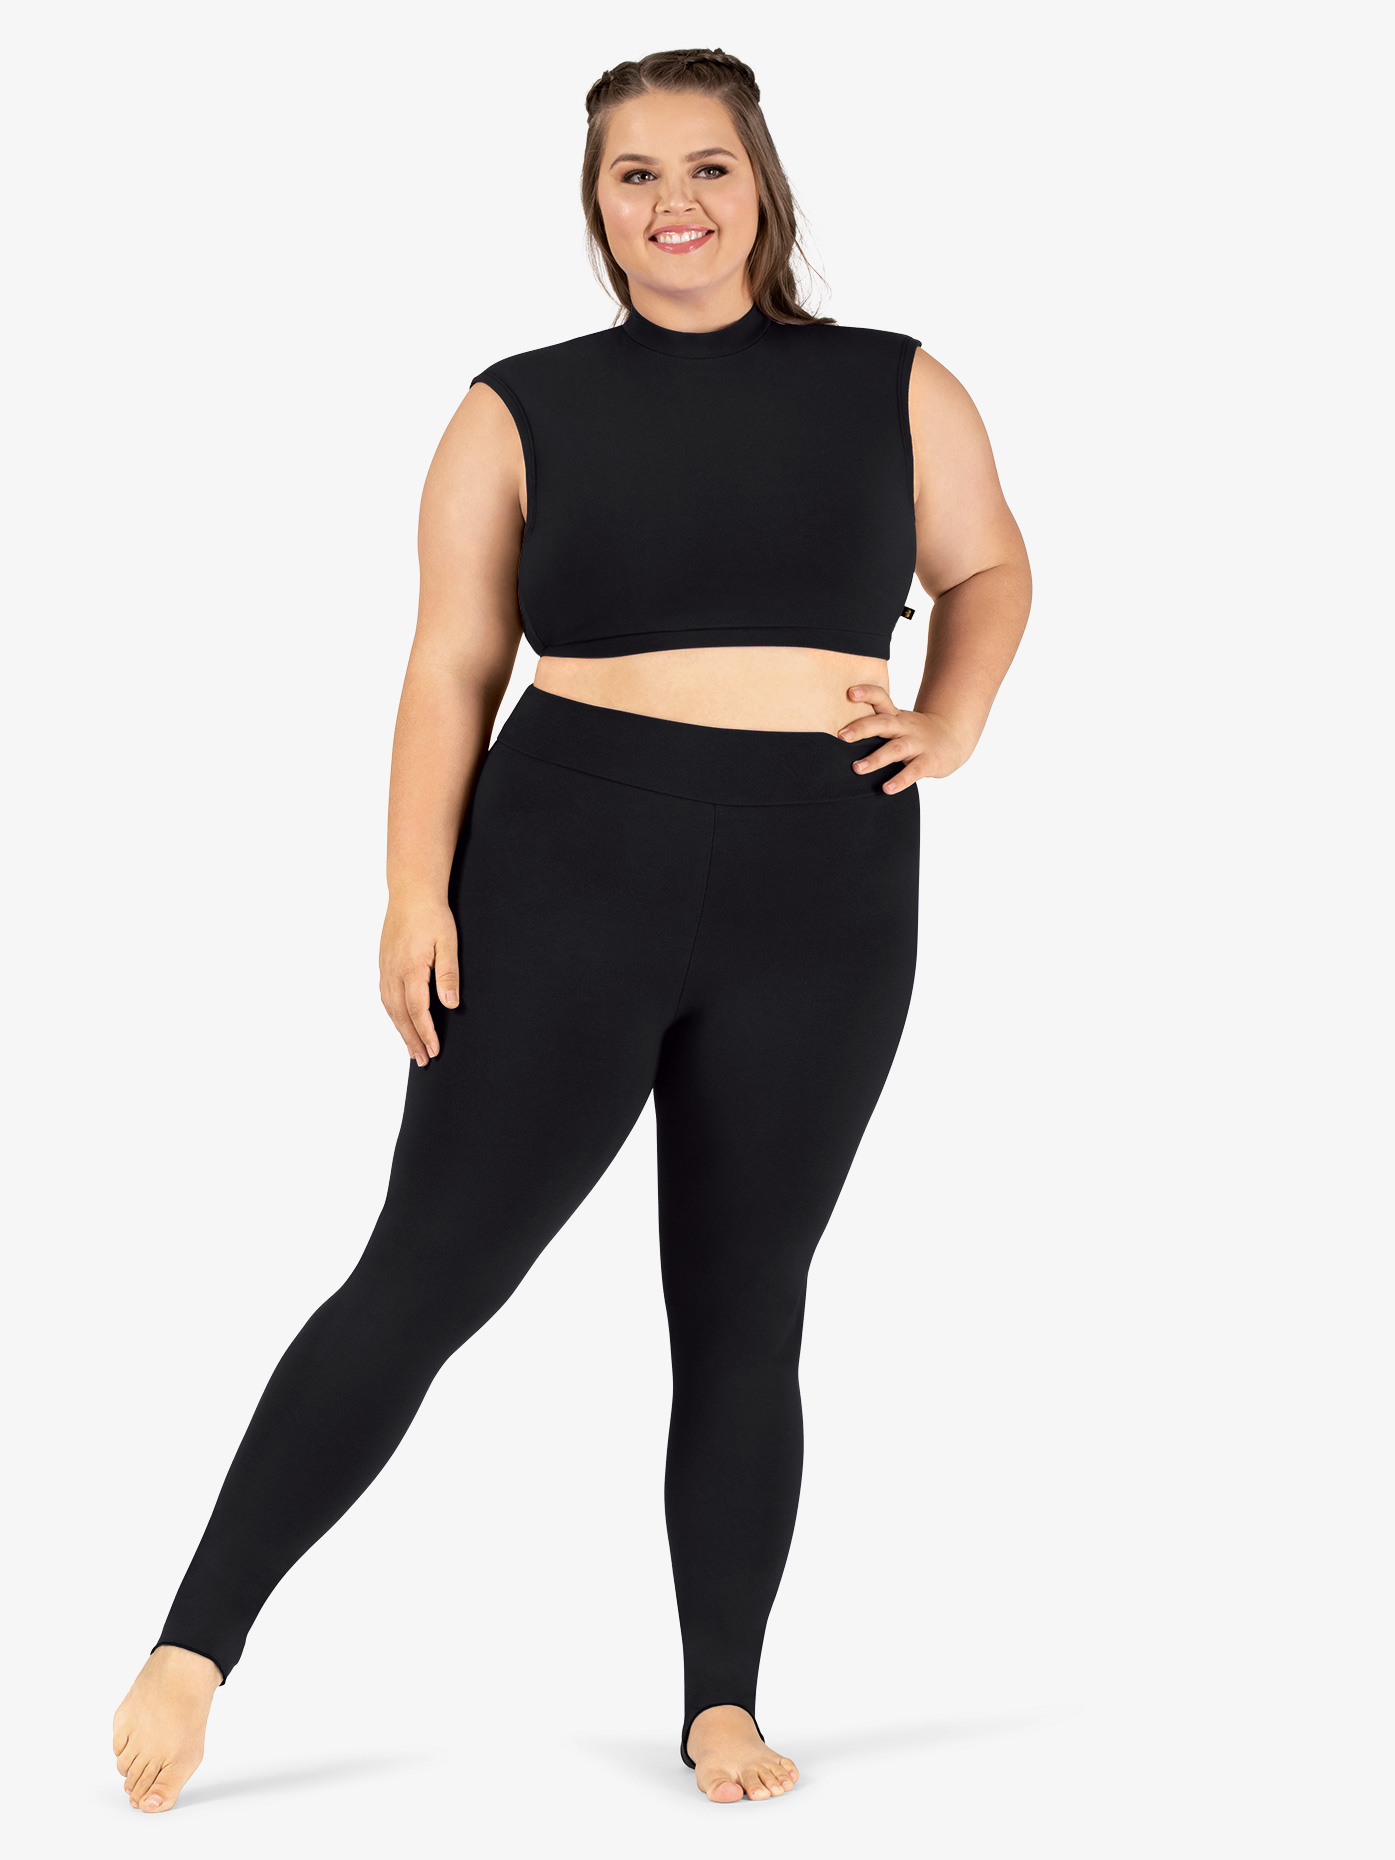 df435573c9d0ab Womens Plus Size Sueded Cotton Basic Dance Stirrup Leggings - Style No  MM109P. Loading zoom